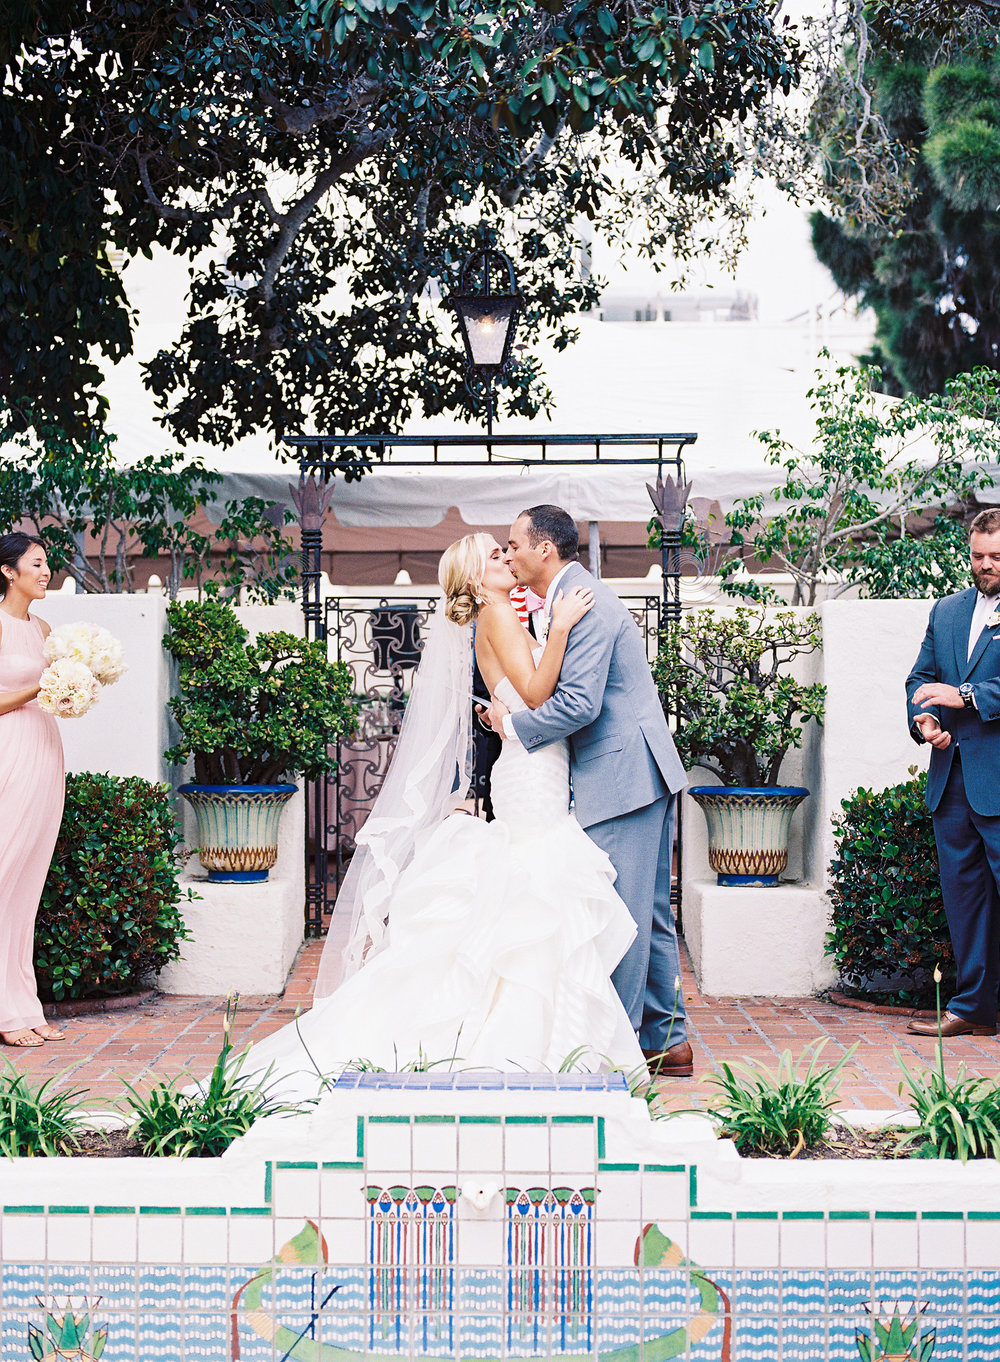 La Jolla Wedding at Darlington House | Sparkly and Classic Wedding Details | Michelle Garibay Events